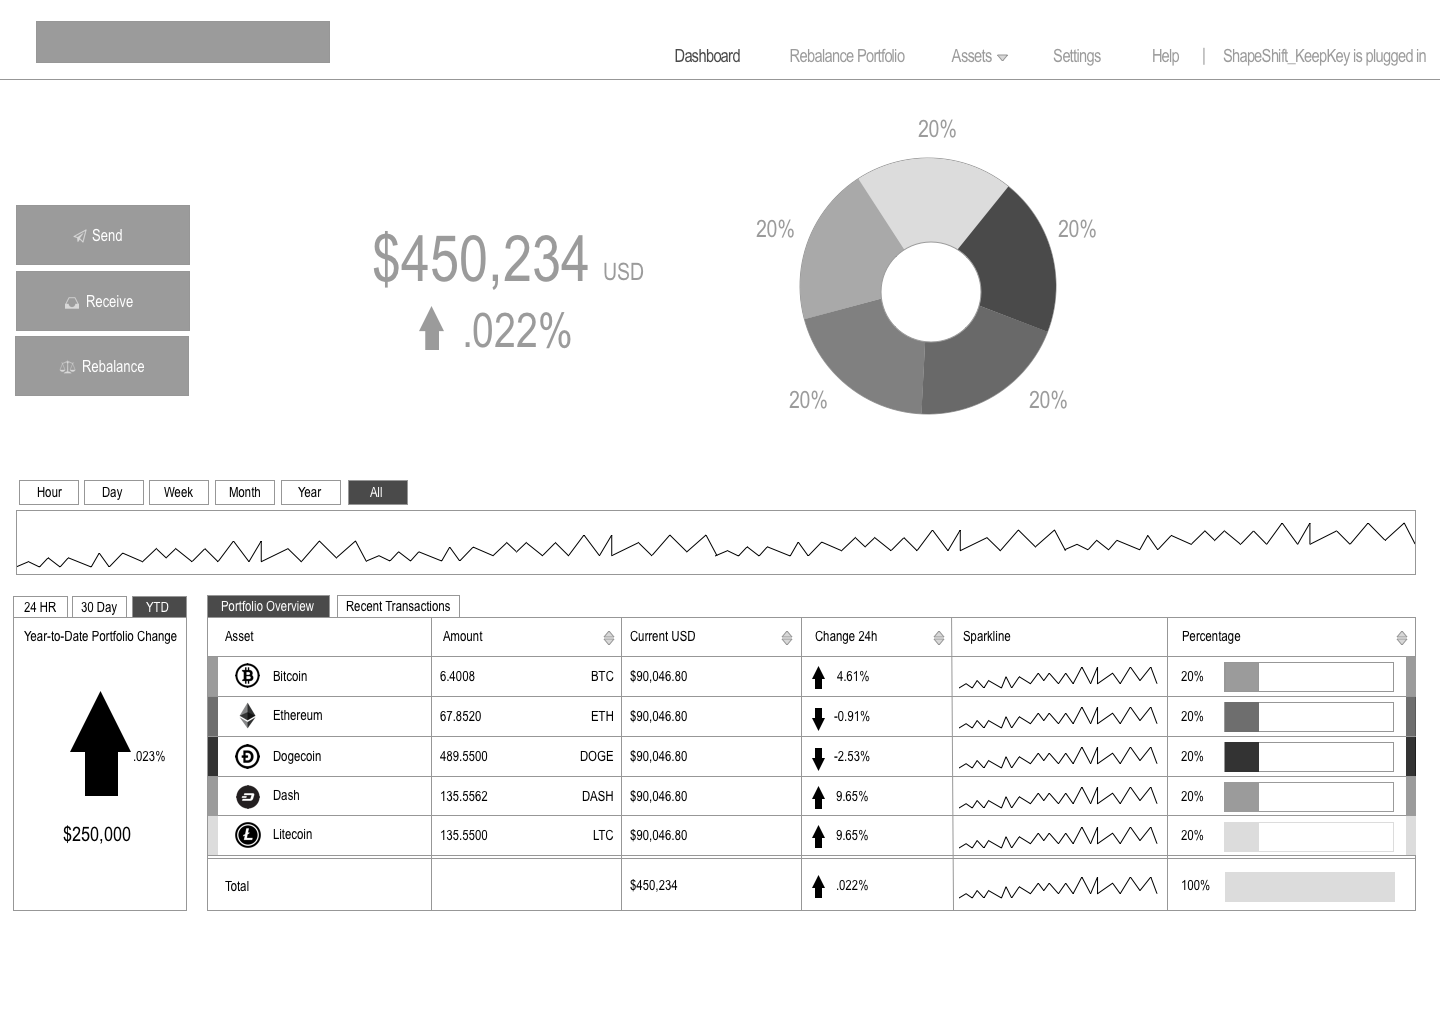 Wireframe of Portfolio Dashboard showcasing a user's cryptocurrency assets.